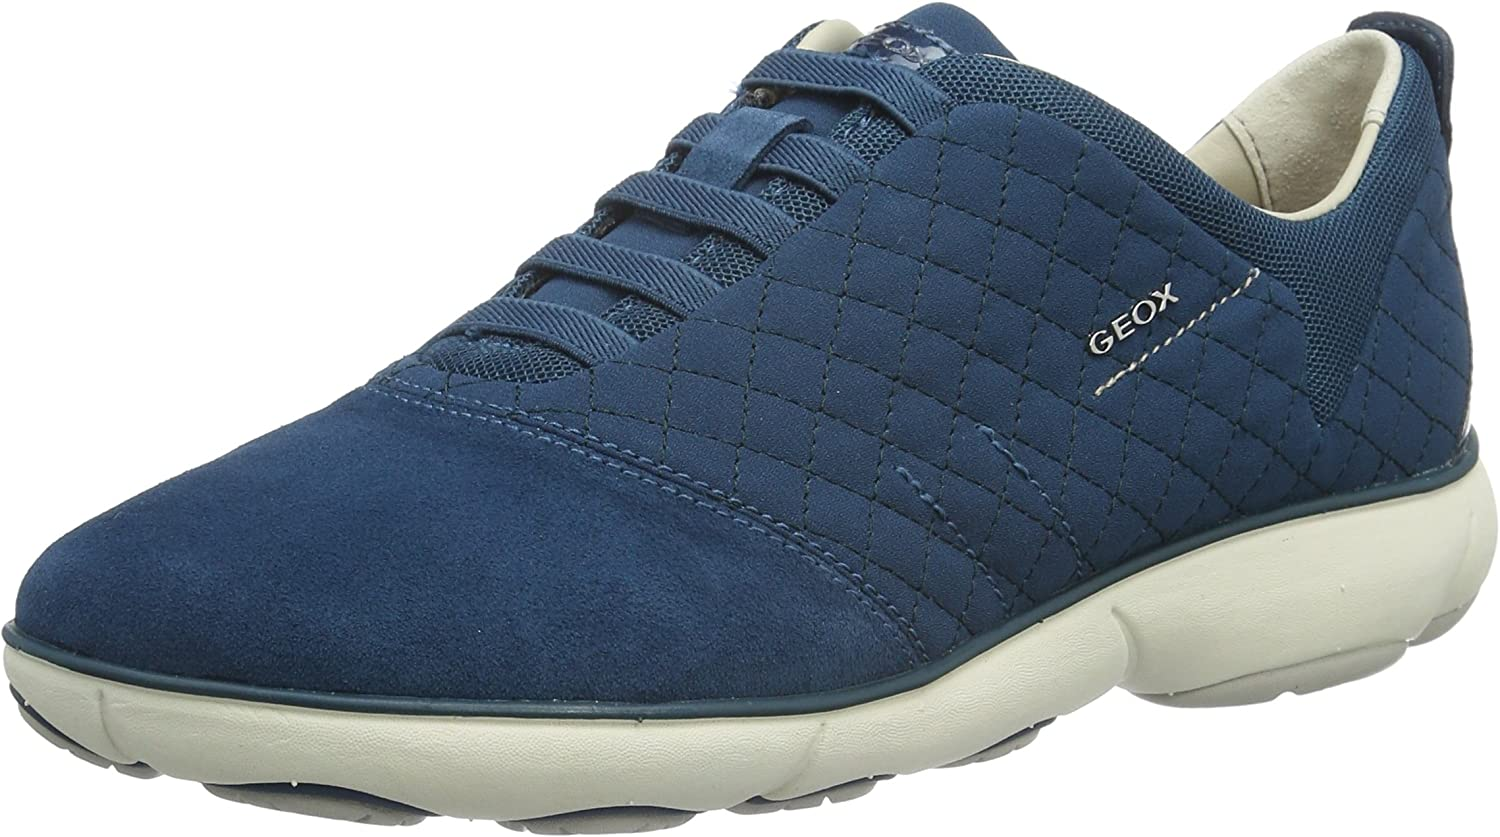 Geox Women's Wnebula7 Fashion Sneaker